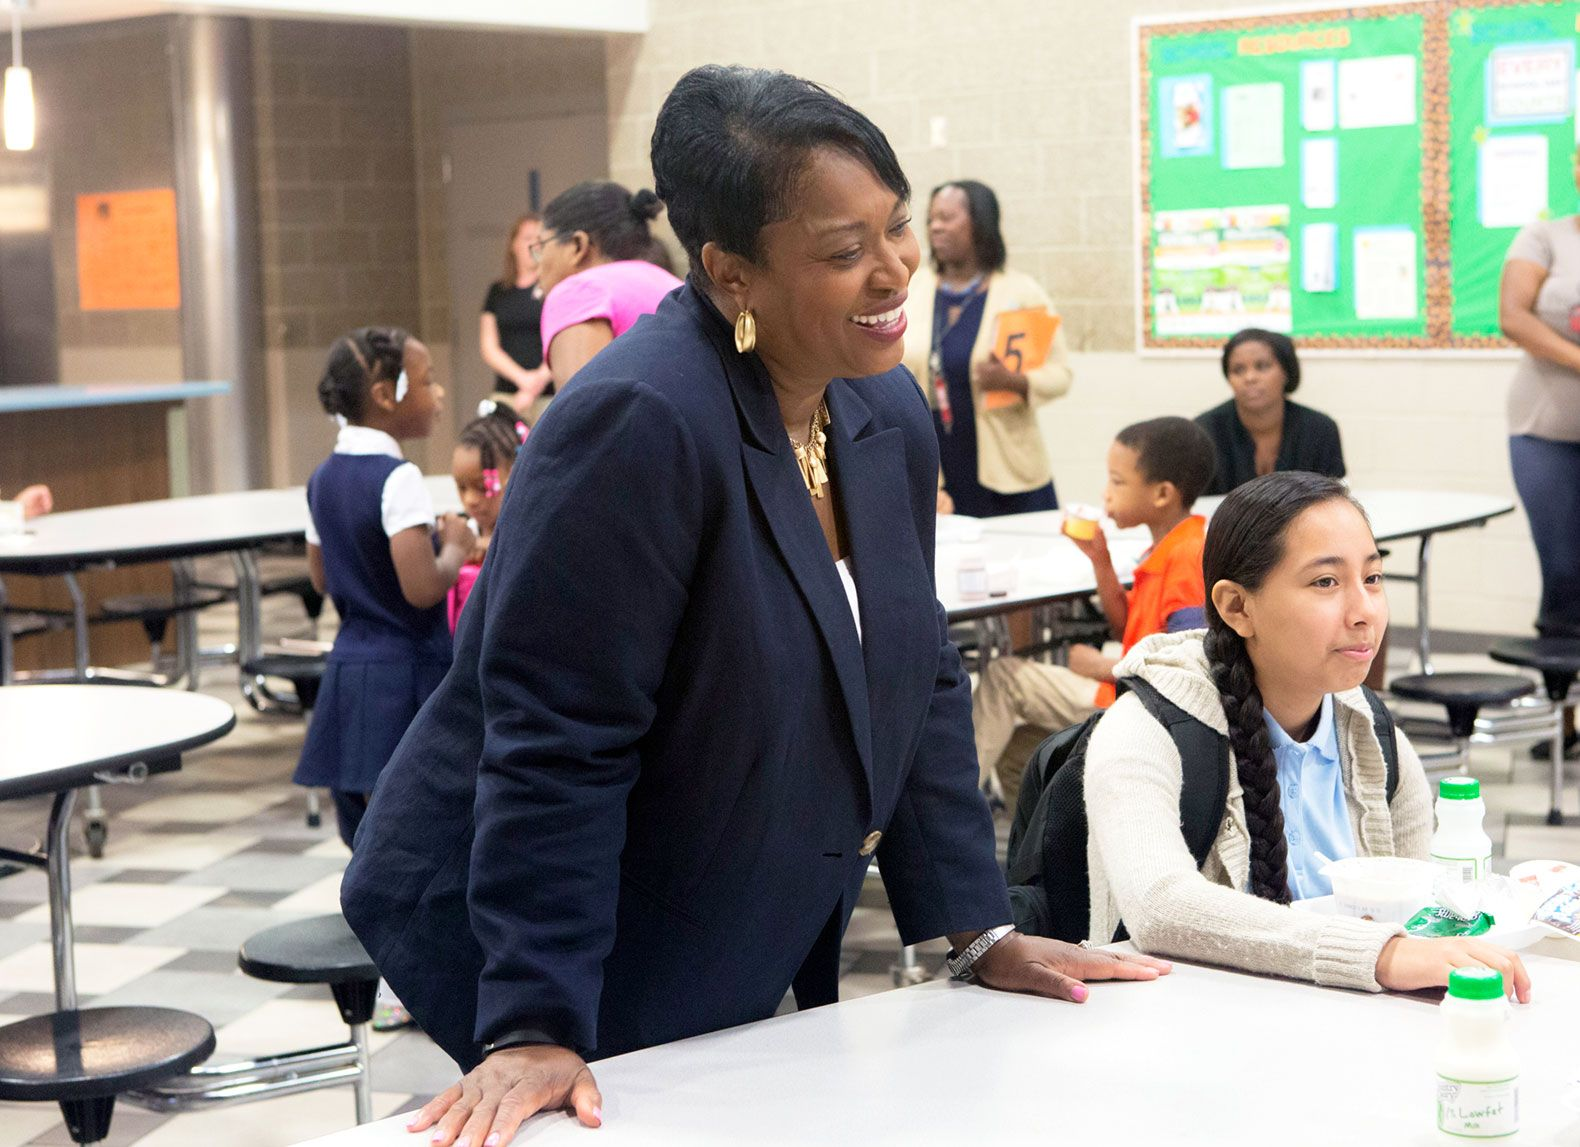 Grand Rapids Superintendent Teresa Weatherall Neal tours a school on the first day of the year. Neal has worked in the district for 35 years.